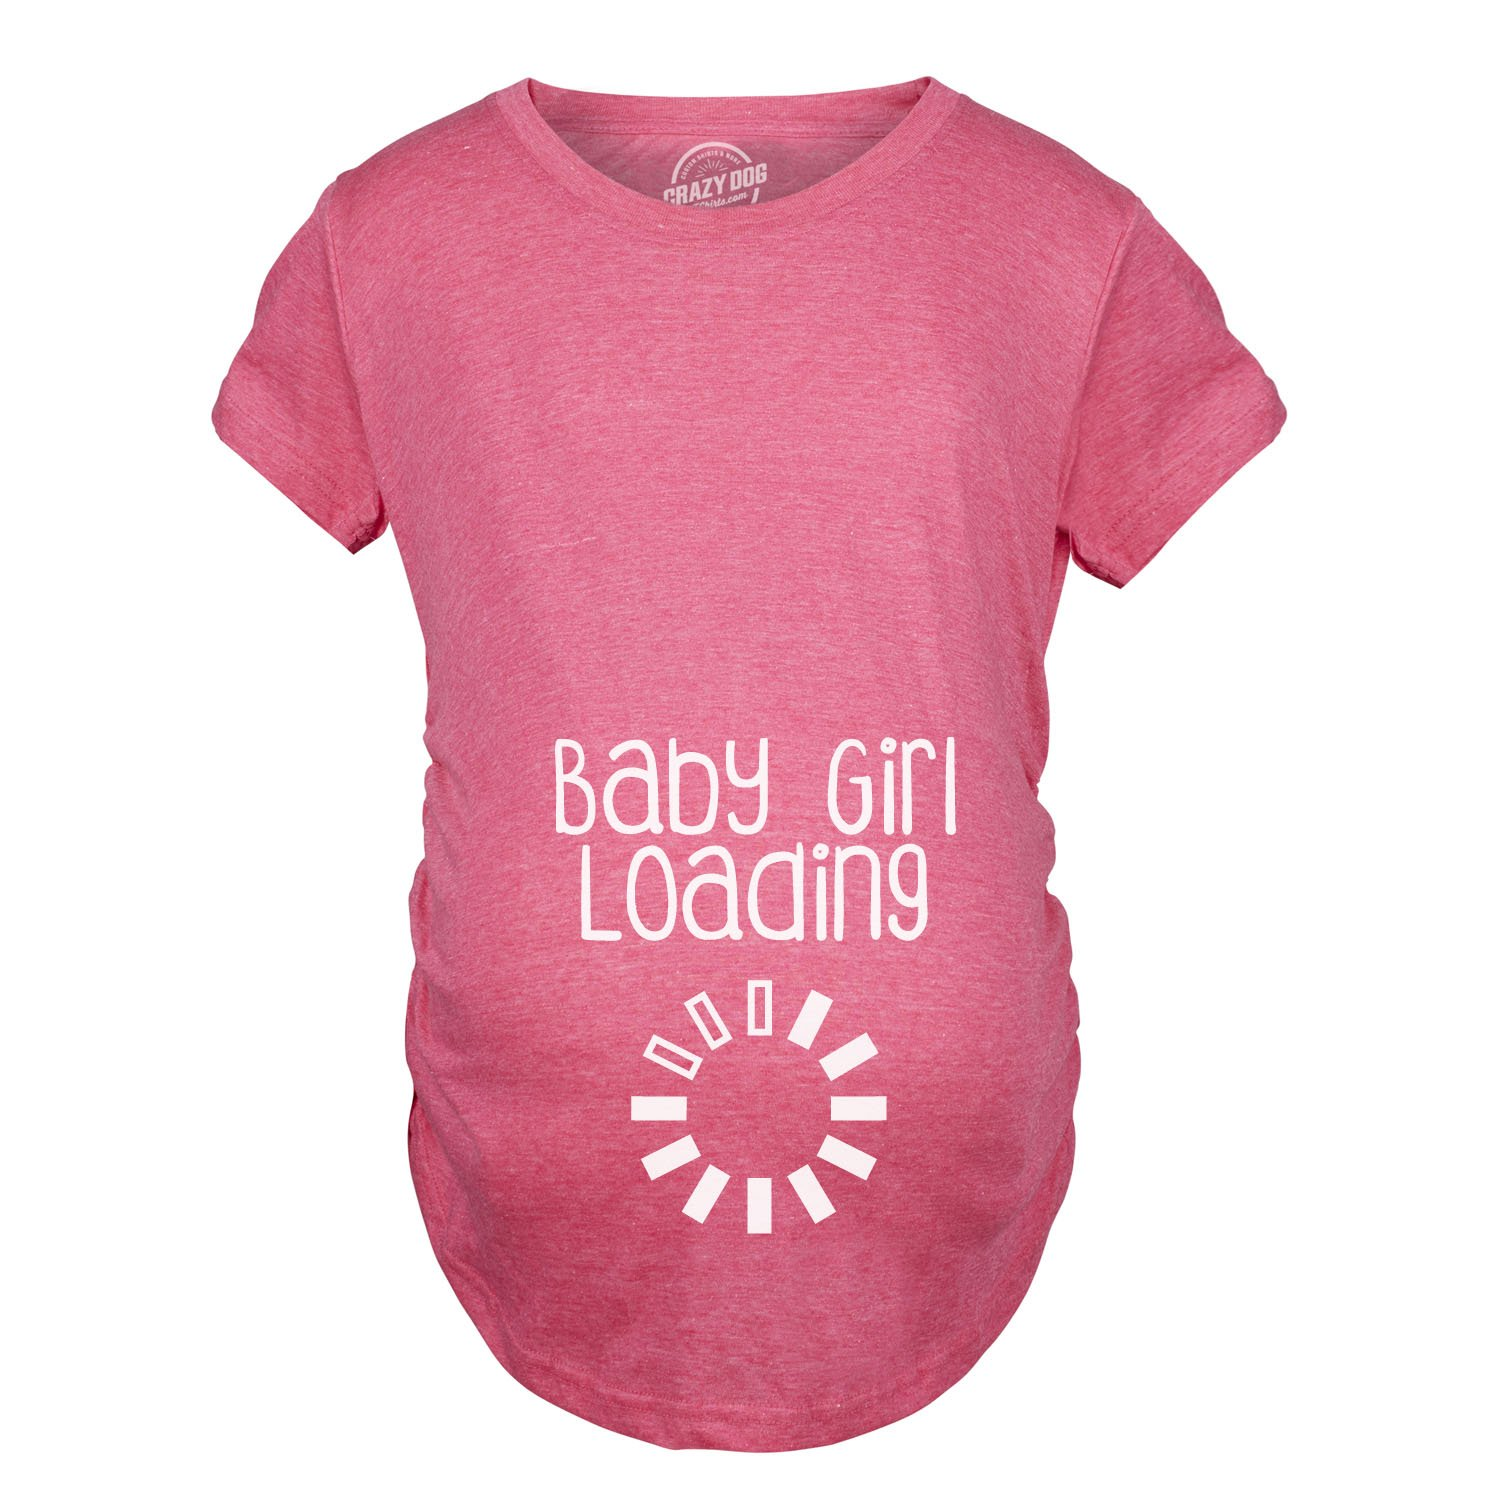 Maternity Baby Girl Loading Tshirt Funny Pregnancy Announcment Tee (Pink) -S